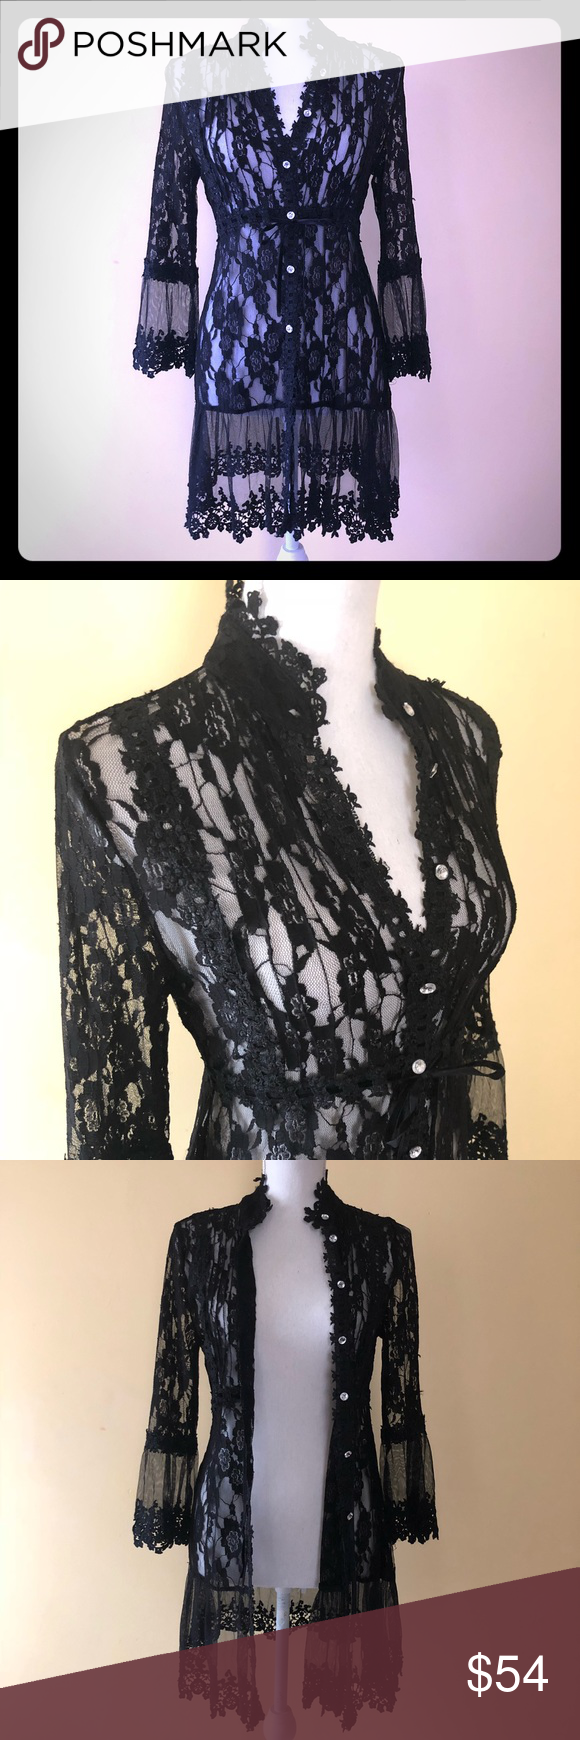 abc9601c62 Super sexy lace long cardigan. Just throw over a camisole and go! Or  nothing and stay 😜. Size M. Beautiful rhinestone buttons. And a tie  closure too.